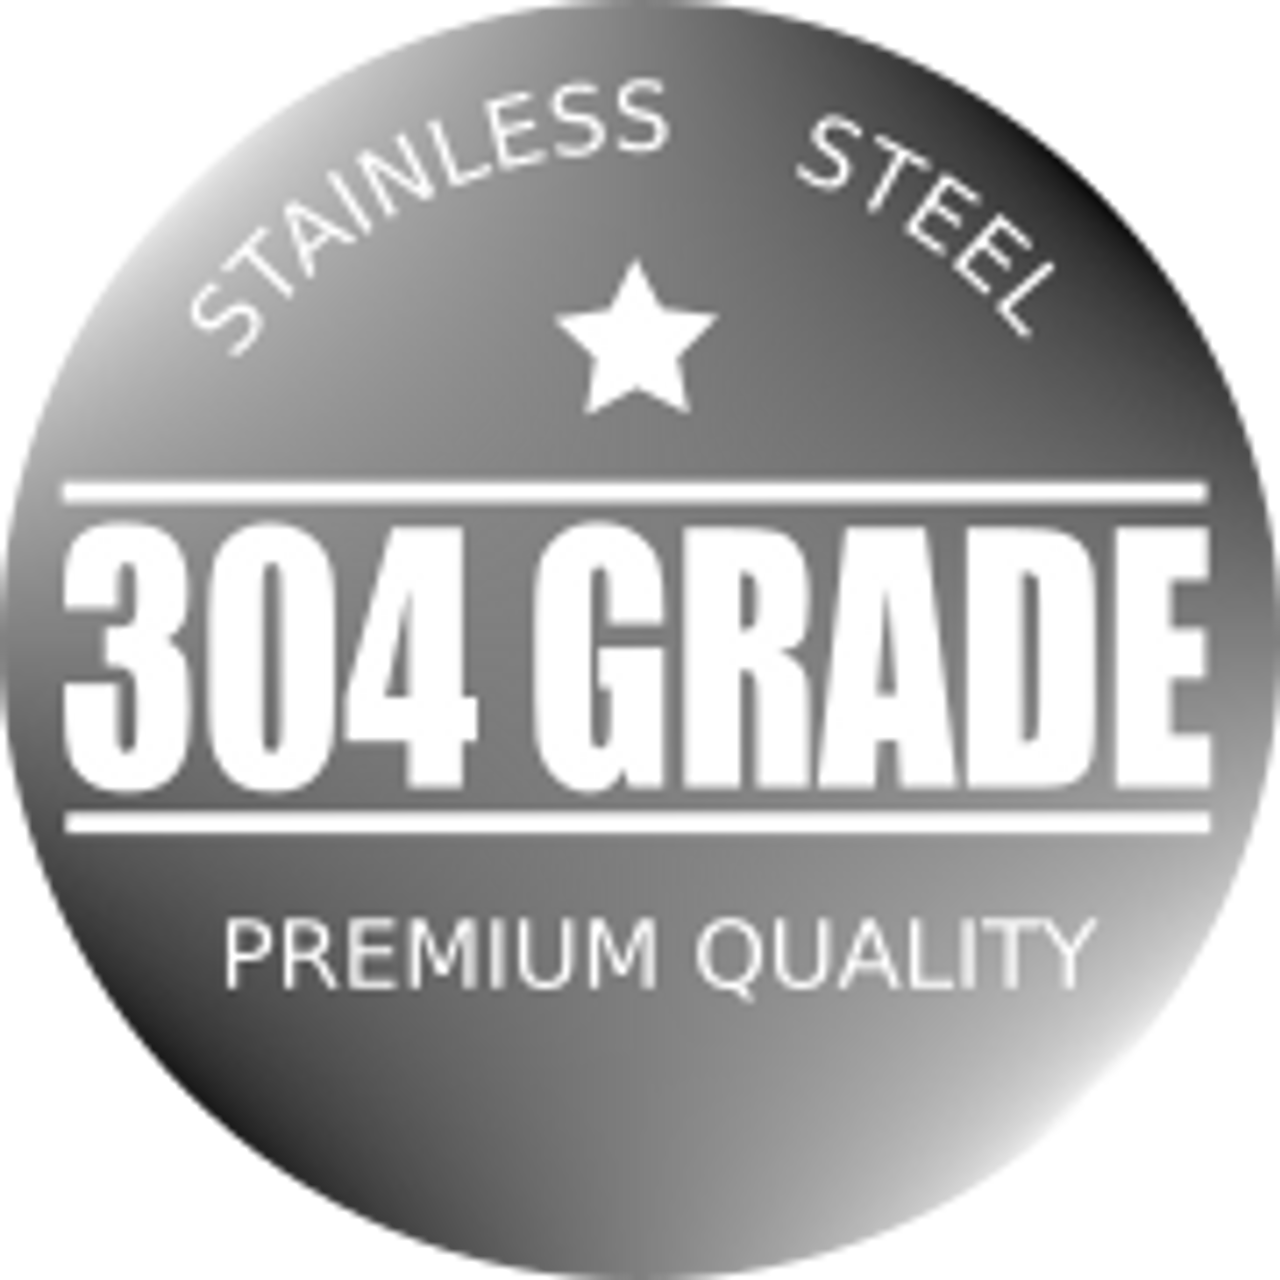 304 Stainless Exhaust Pipes